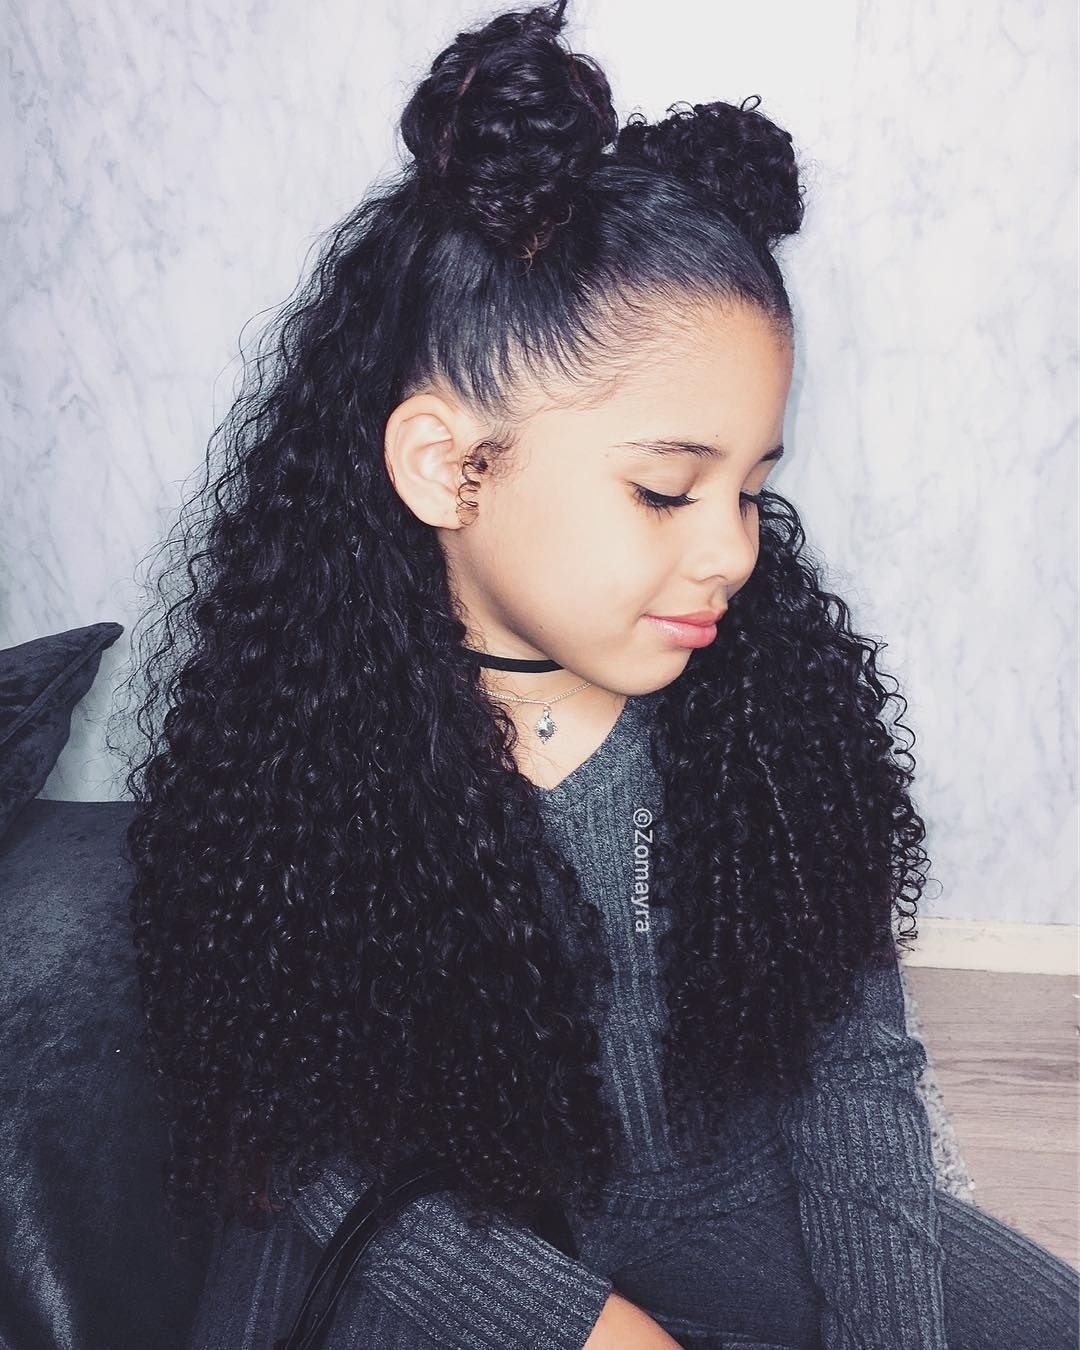 Pin By Omanee Gipson On Future In 2019 | Mixed Curly Hair intended for Curly Hairstyles For Mixed Children Girls